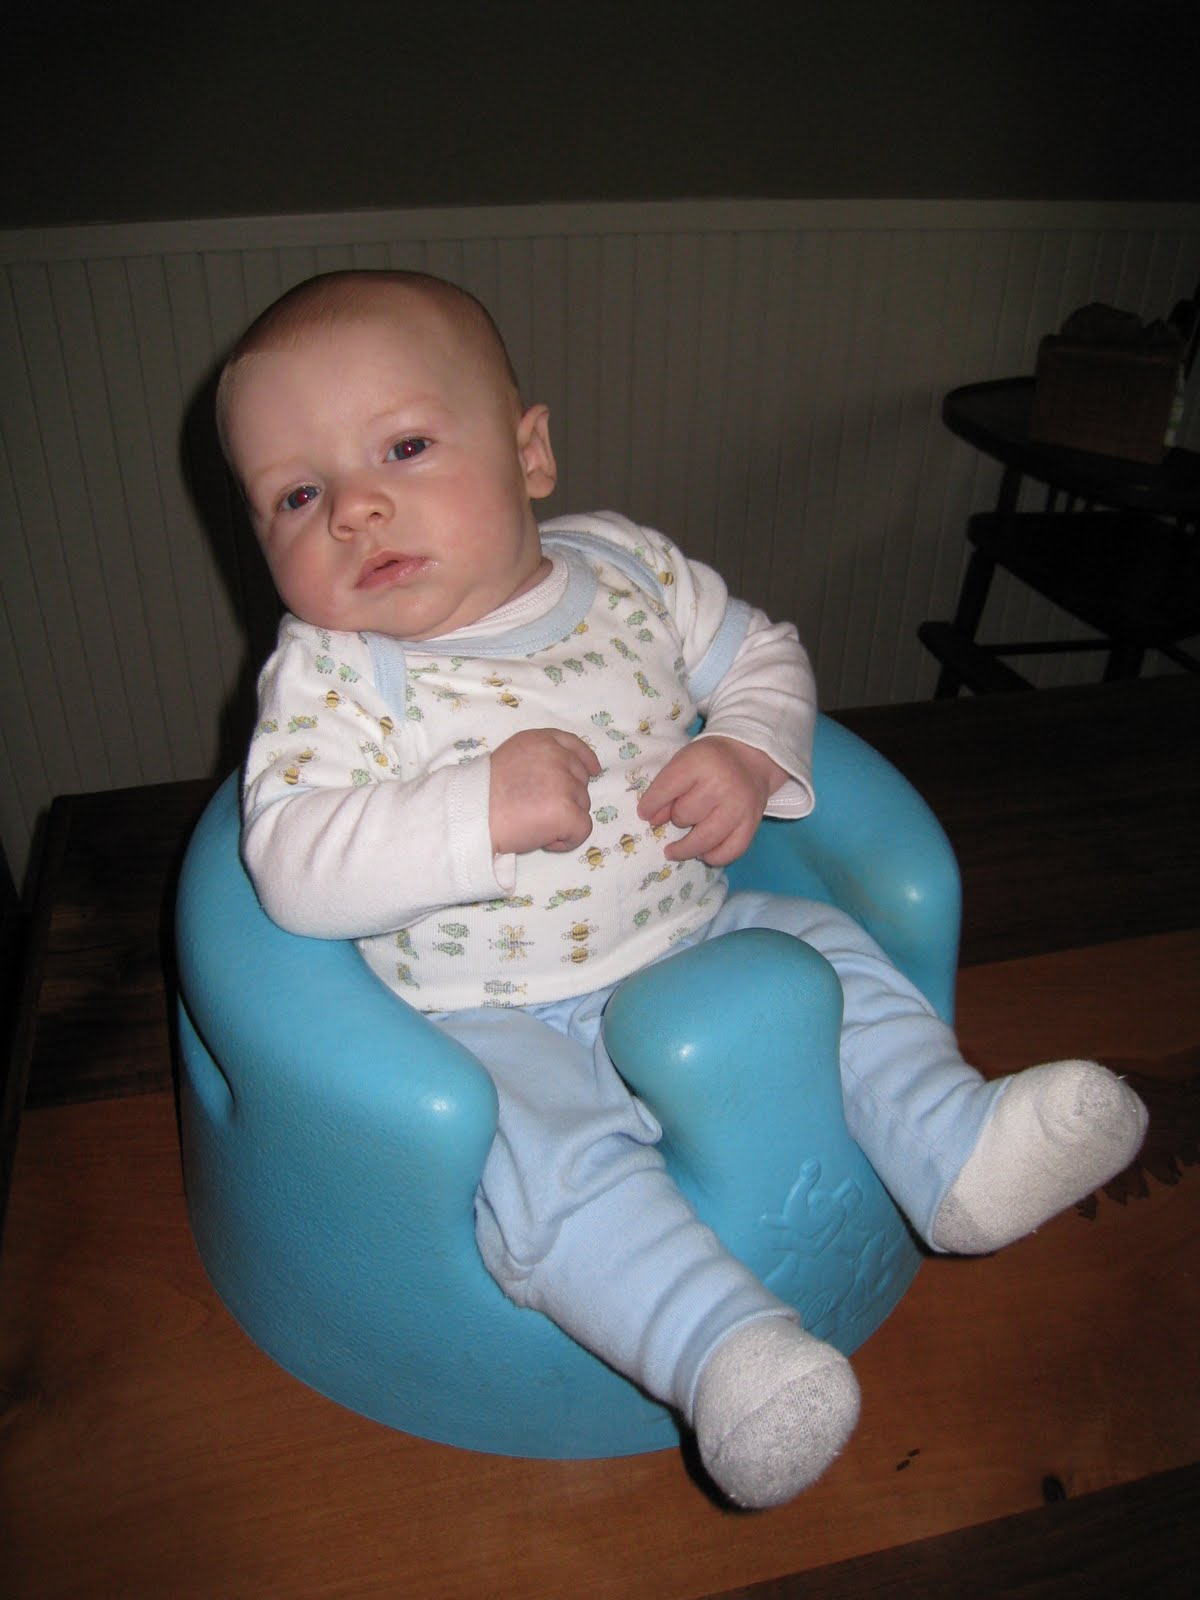 Daniel Amp Heather Amp The Kids The Bumbo Chair